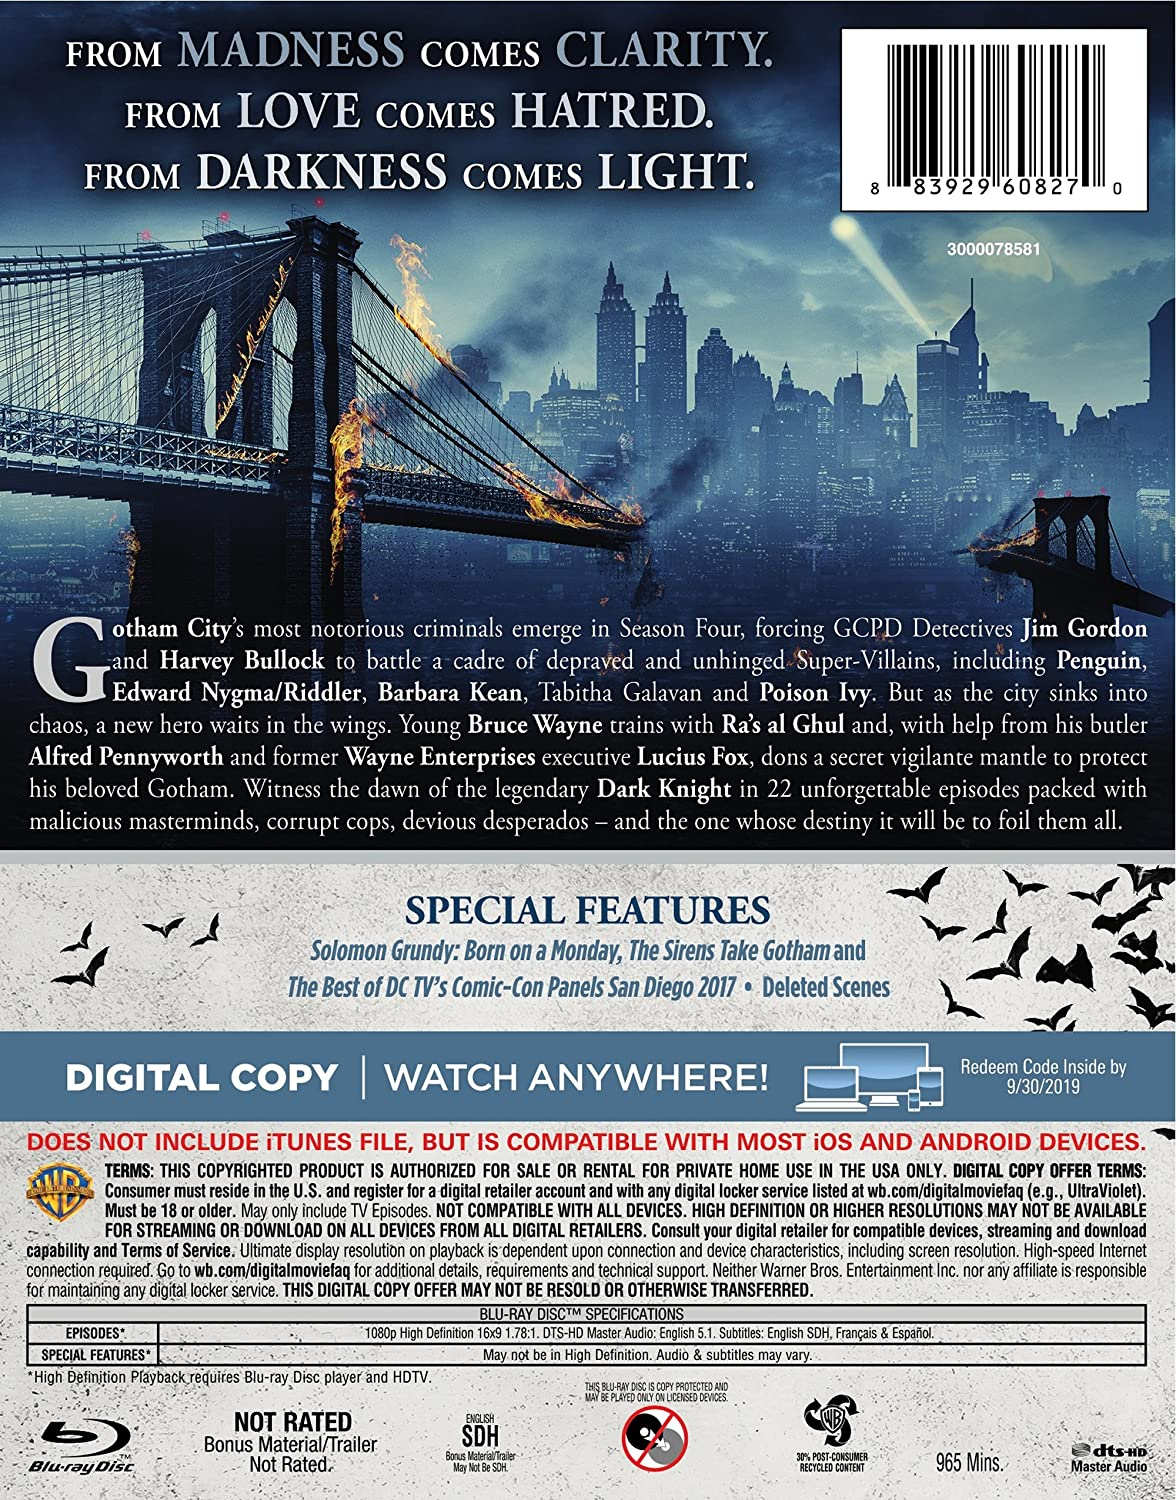 9b0340d6d6 Amazon.com: Gotham: The Complete Fourth Season (BD) [Blu-ray]: Ben  McKenzie, Donal Logue, David Mazouz, Morena Baccarin, Sean Pertwee, Robin  Lord Taylor, ...